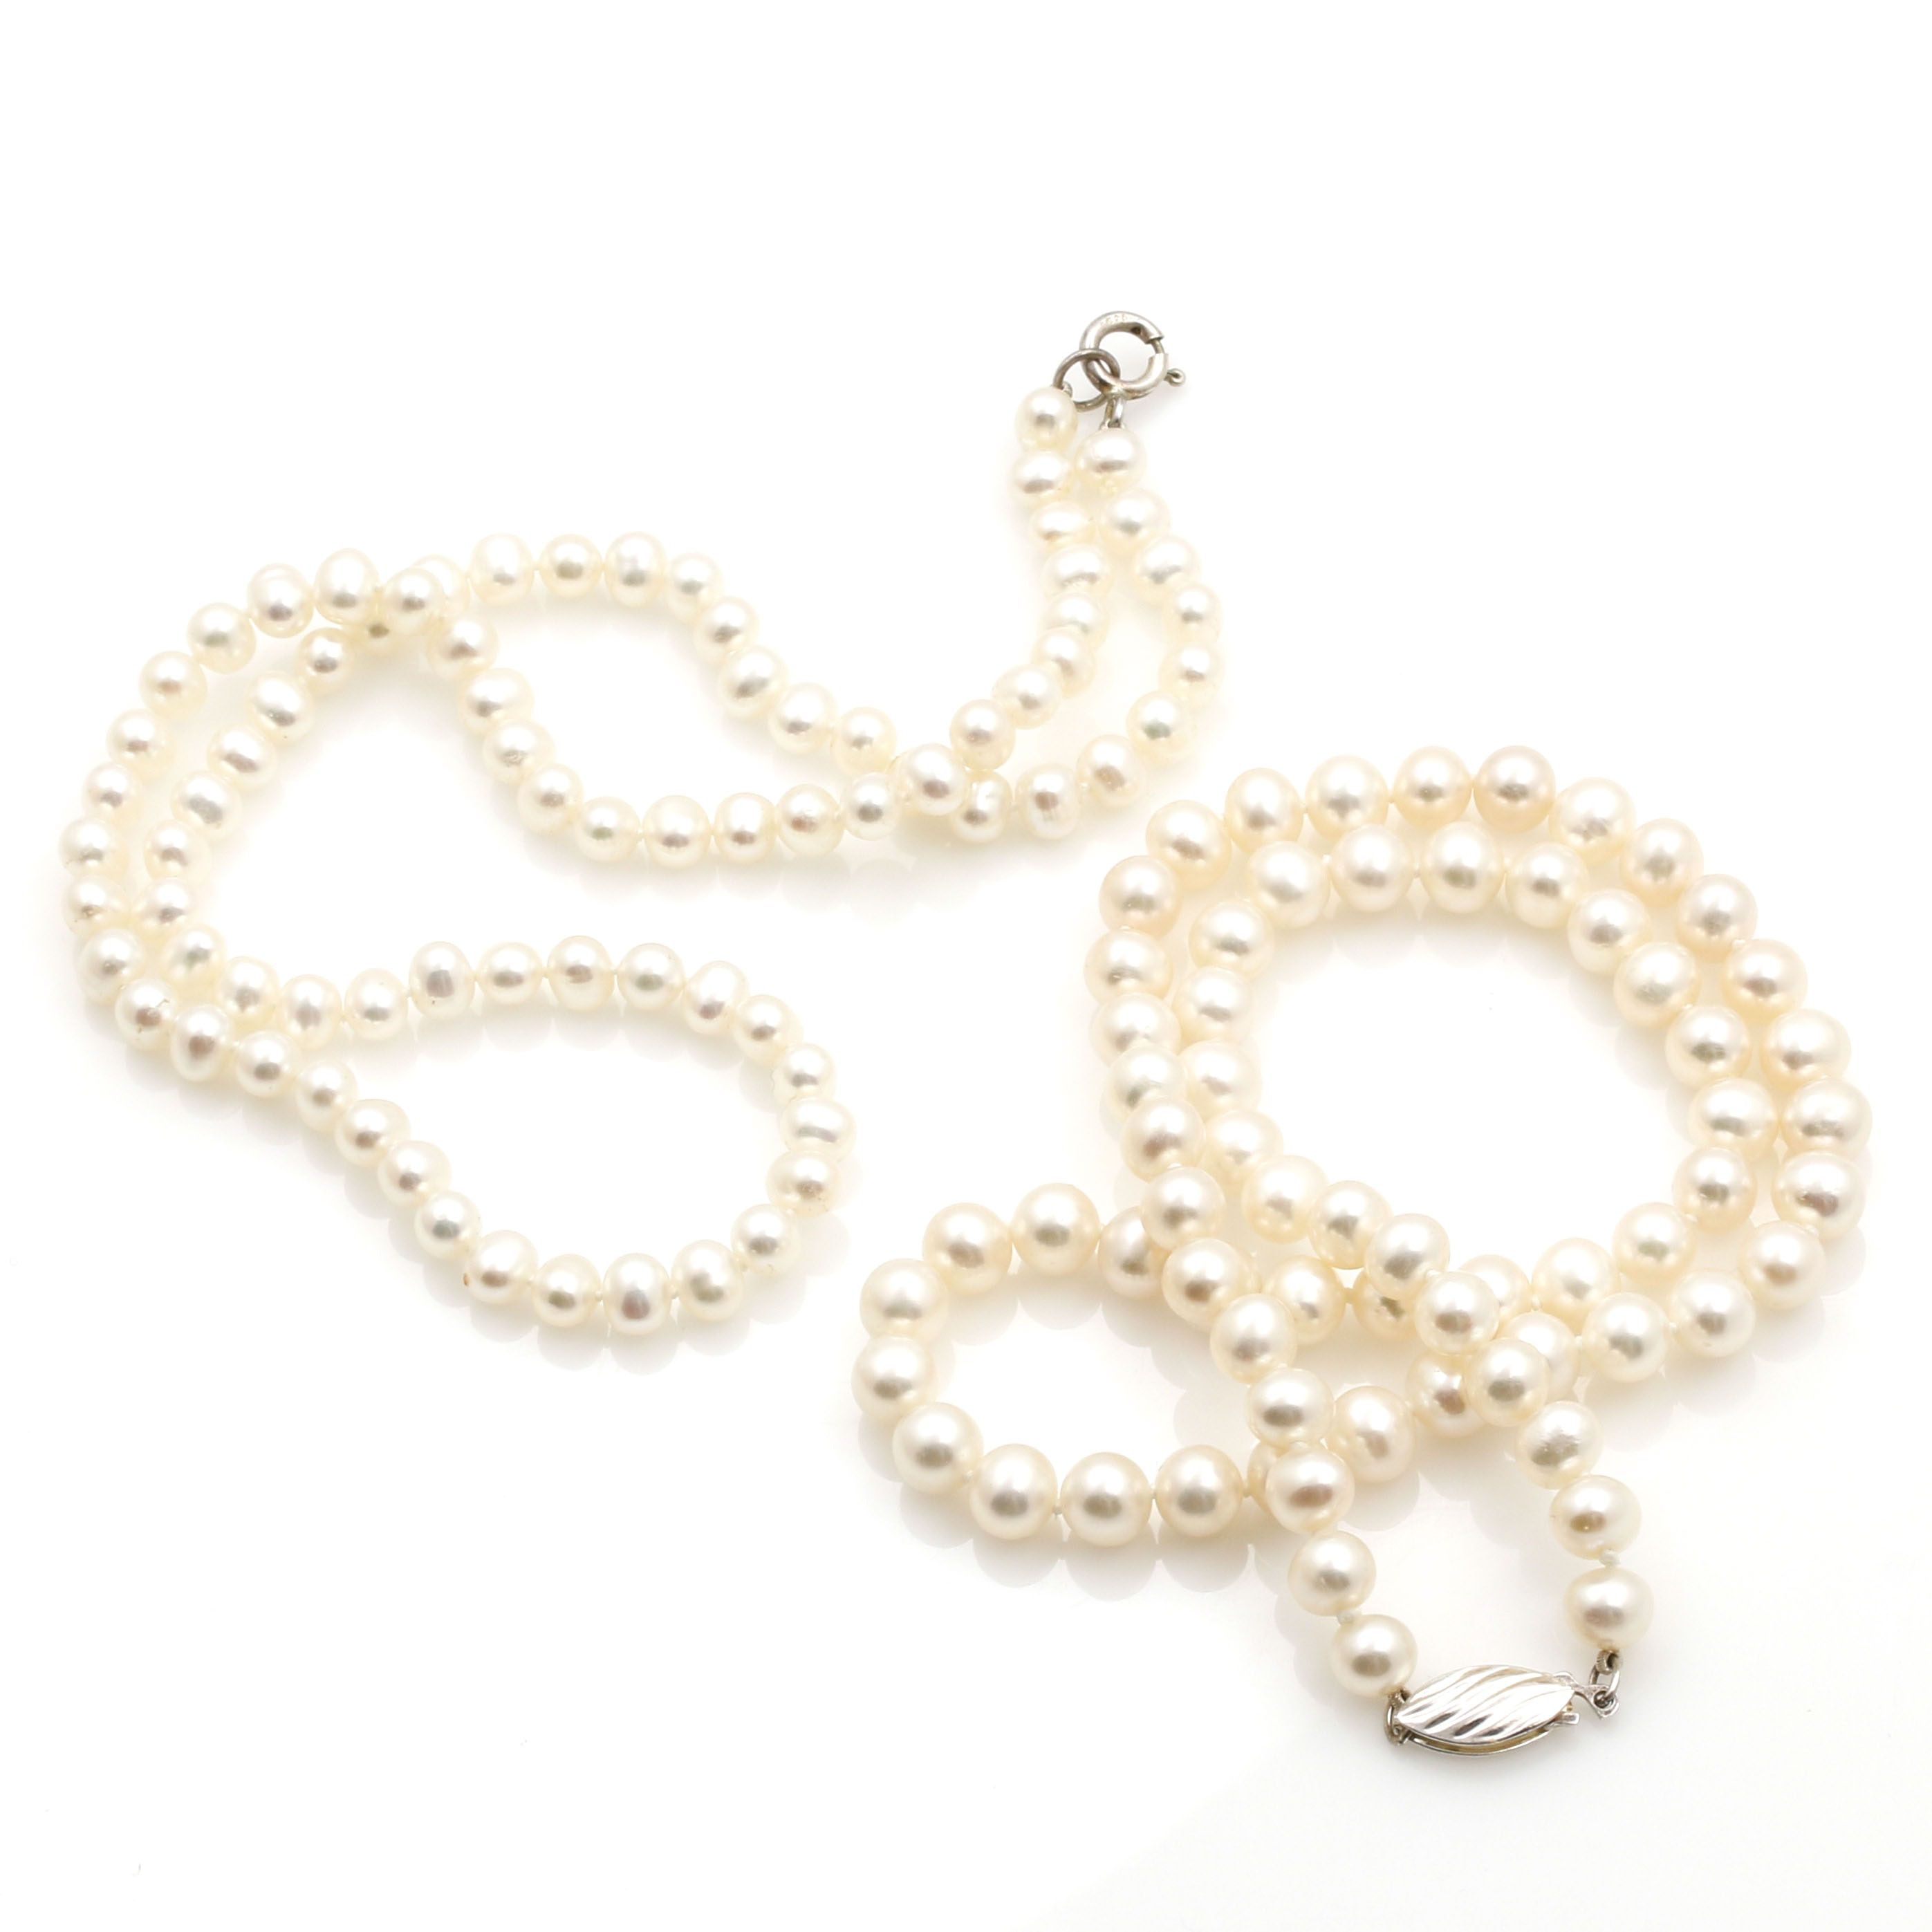 Sterling Silver Freshwater Cultured Pearl Necklaces